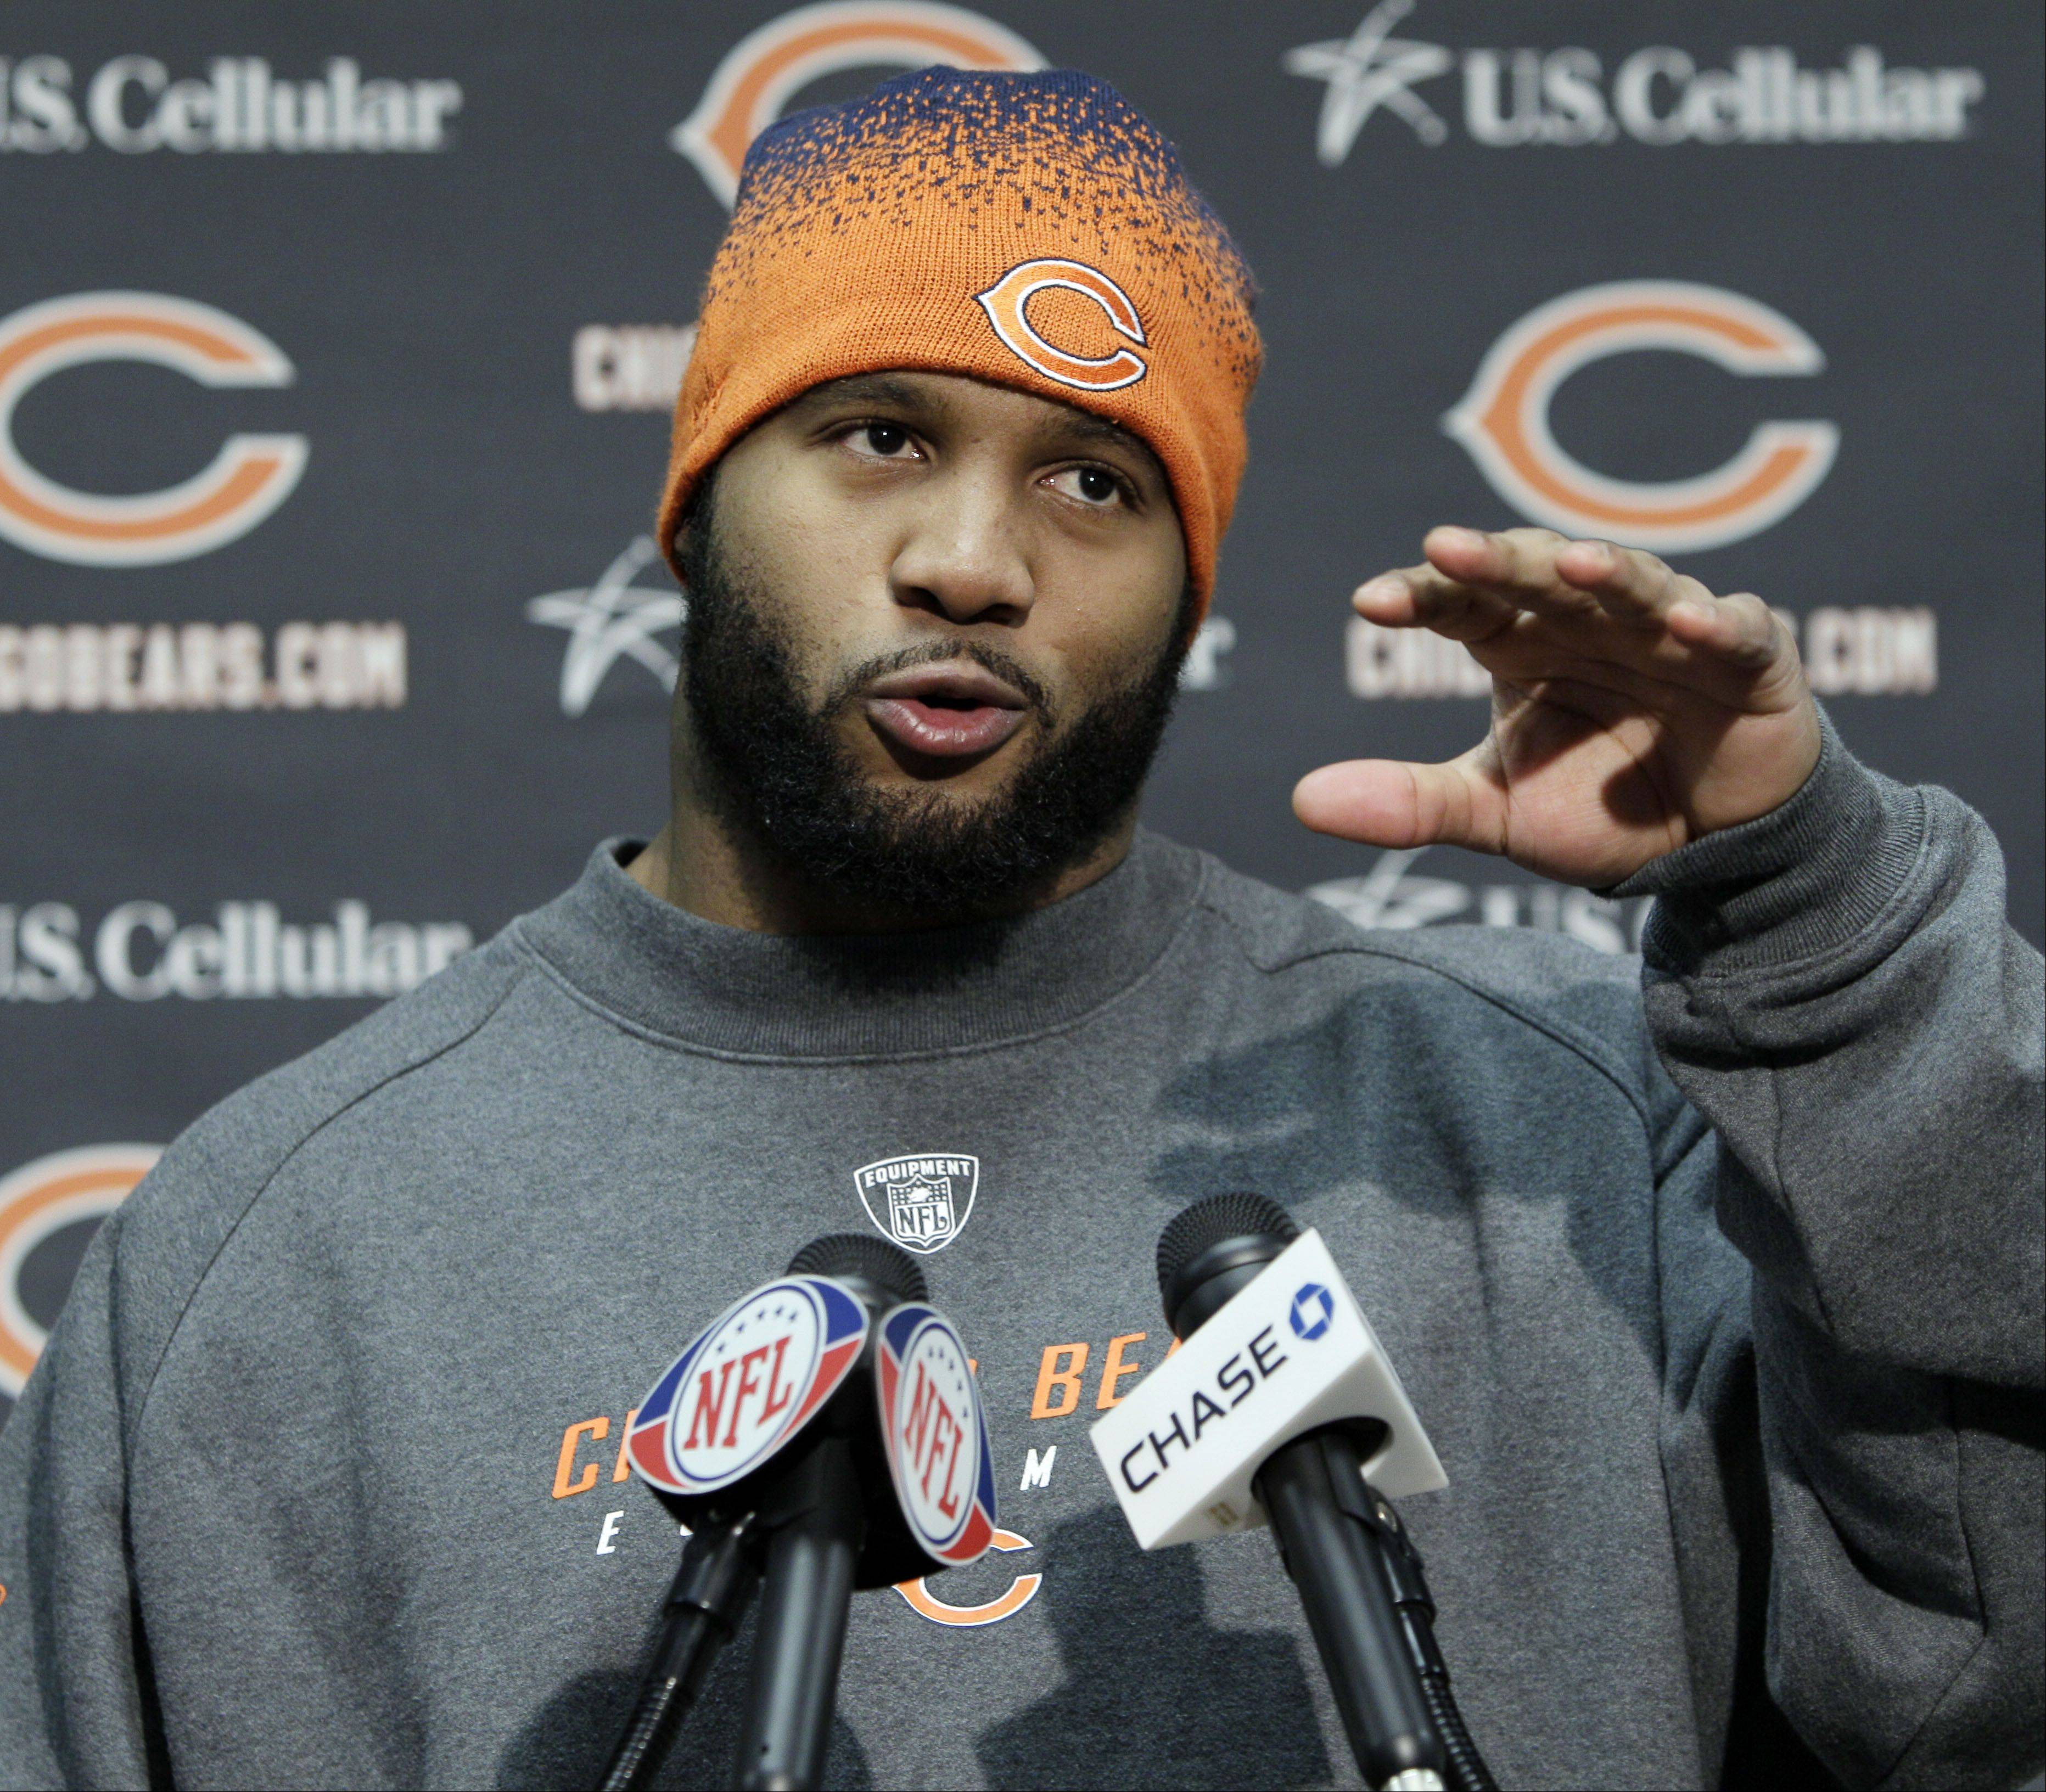 Bears linebacker Lance Briggs told the Chicago Tribune that his agent has filed a formal request for a trade. Briggs, who has three years left on his six-year contract with the Bears, said he doesn't want his demands to be a distraction.